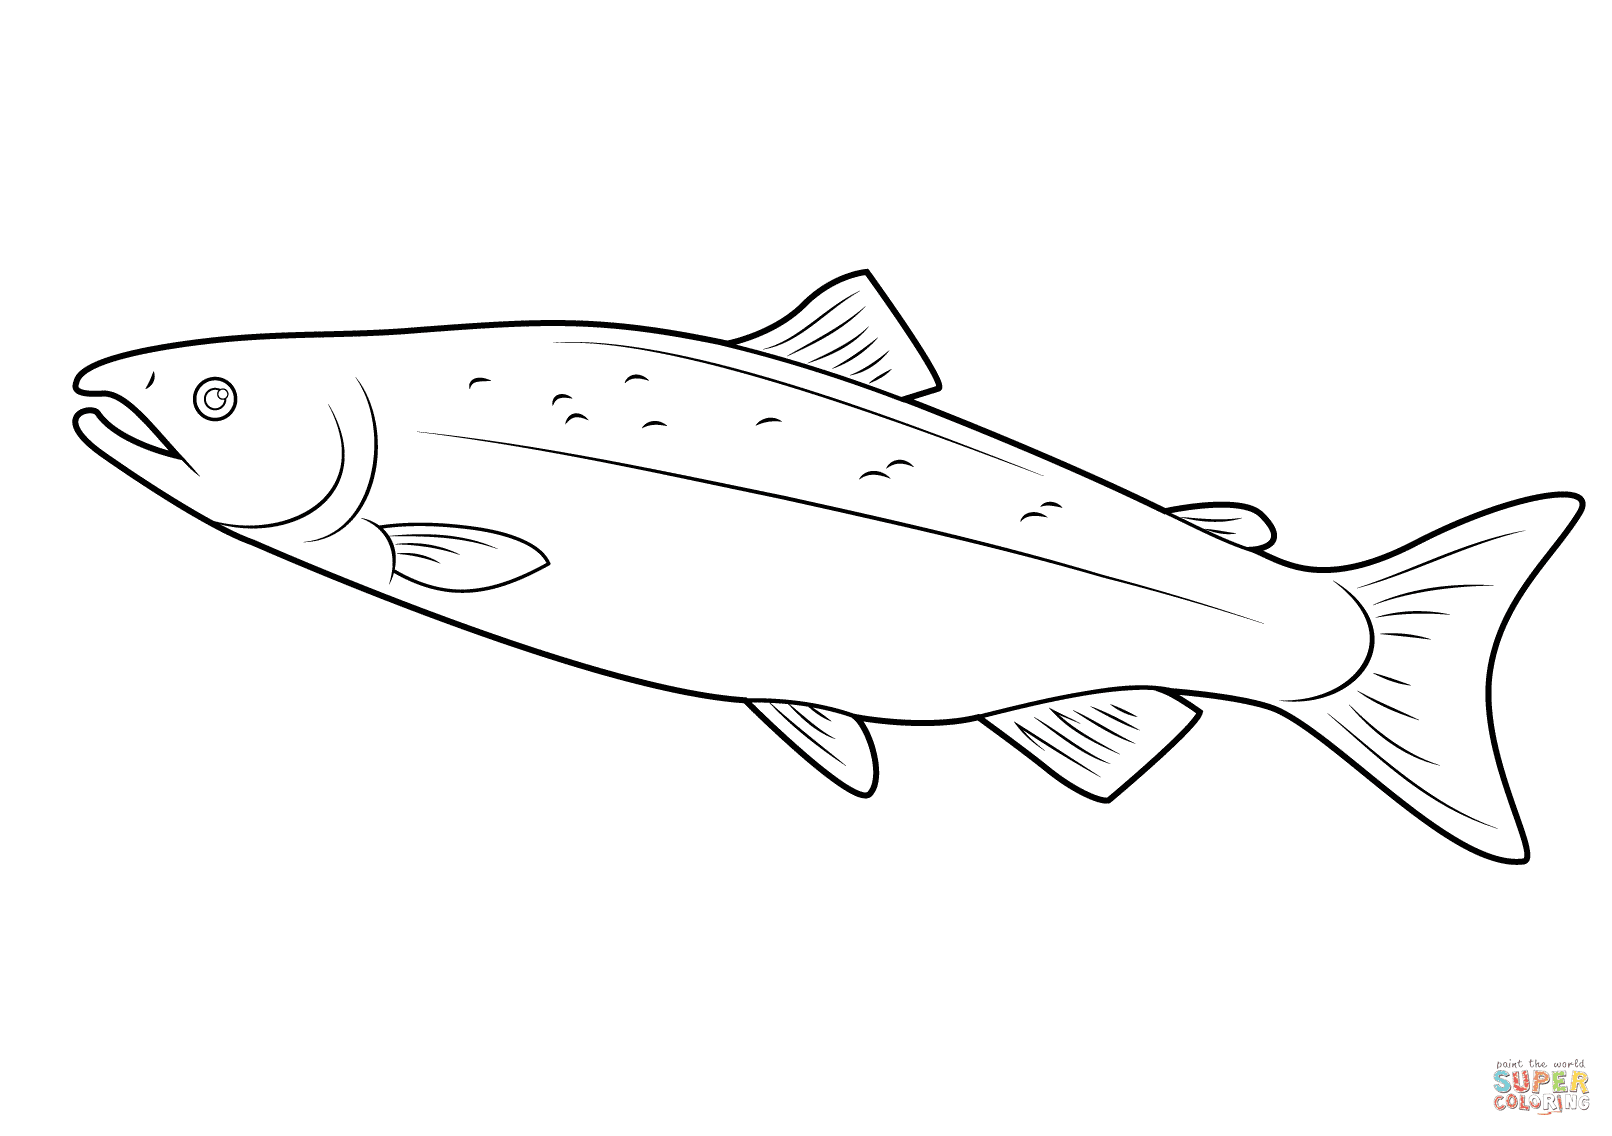 Salmon coloring page | Free Printable Coloring Pages